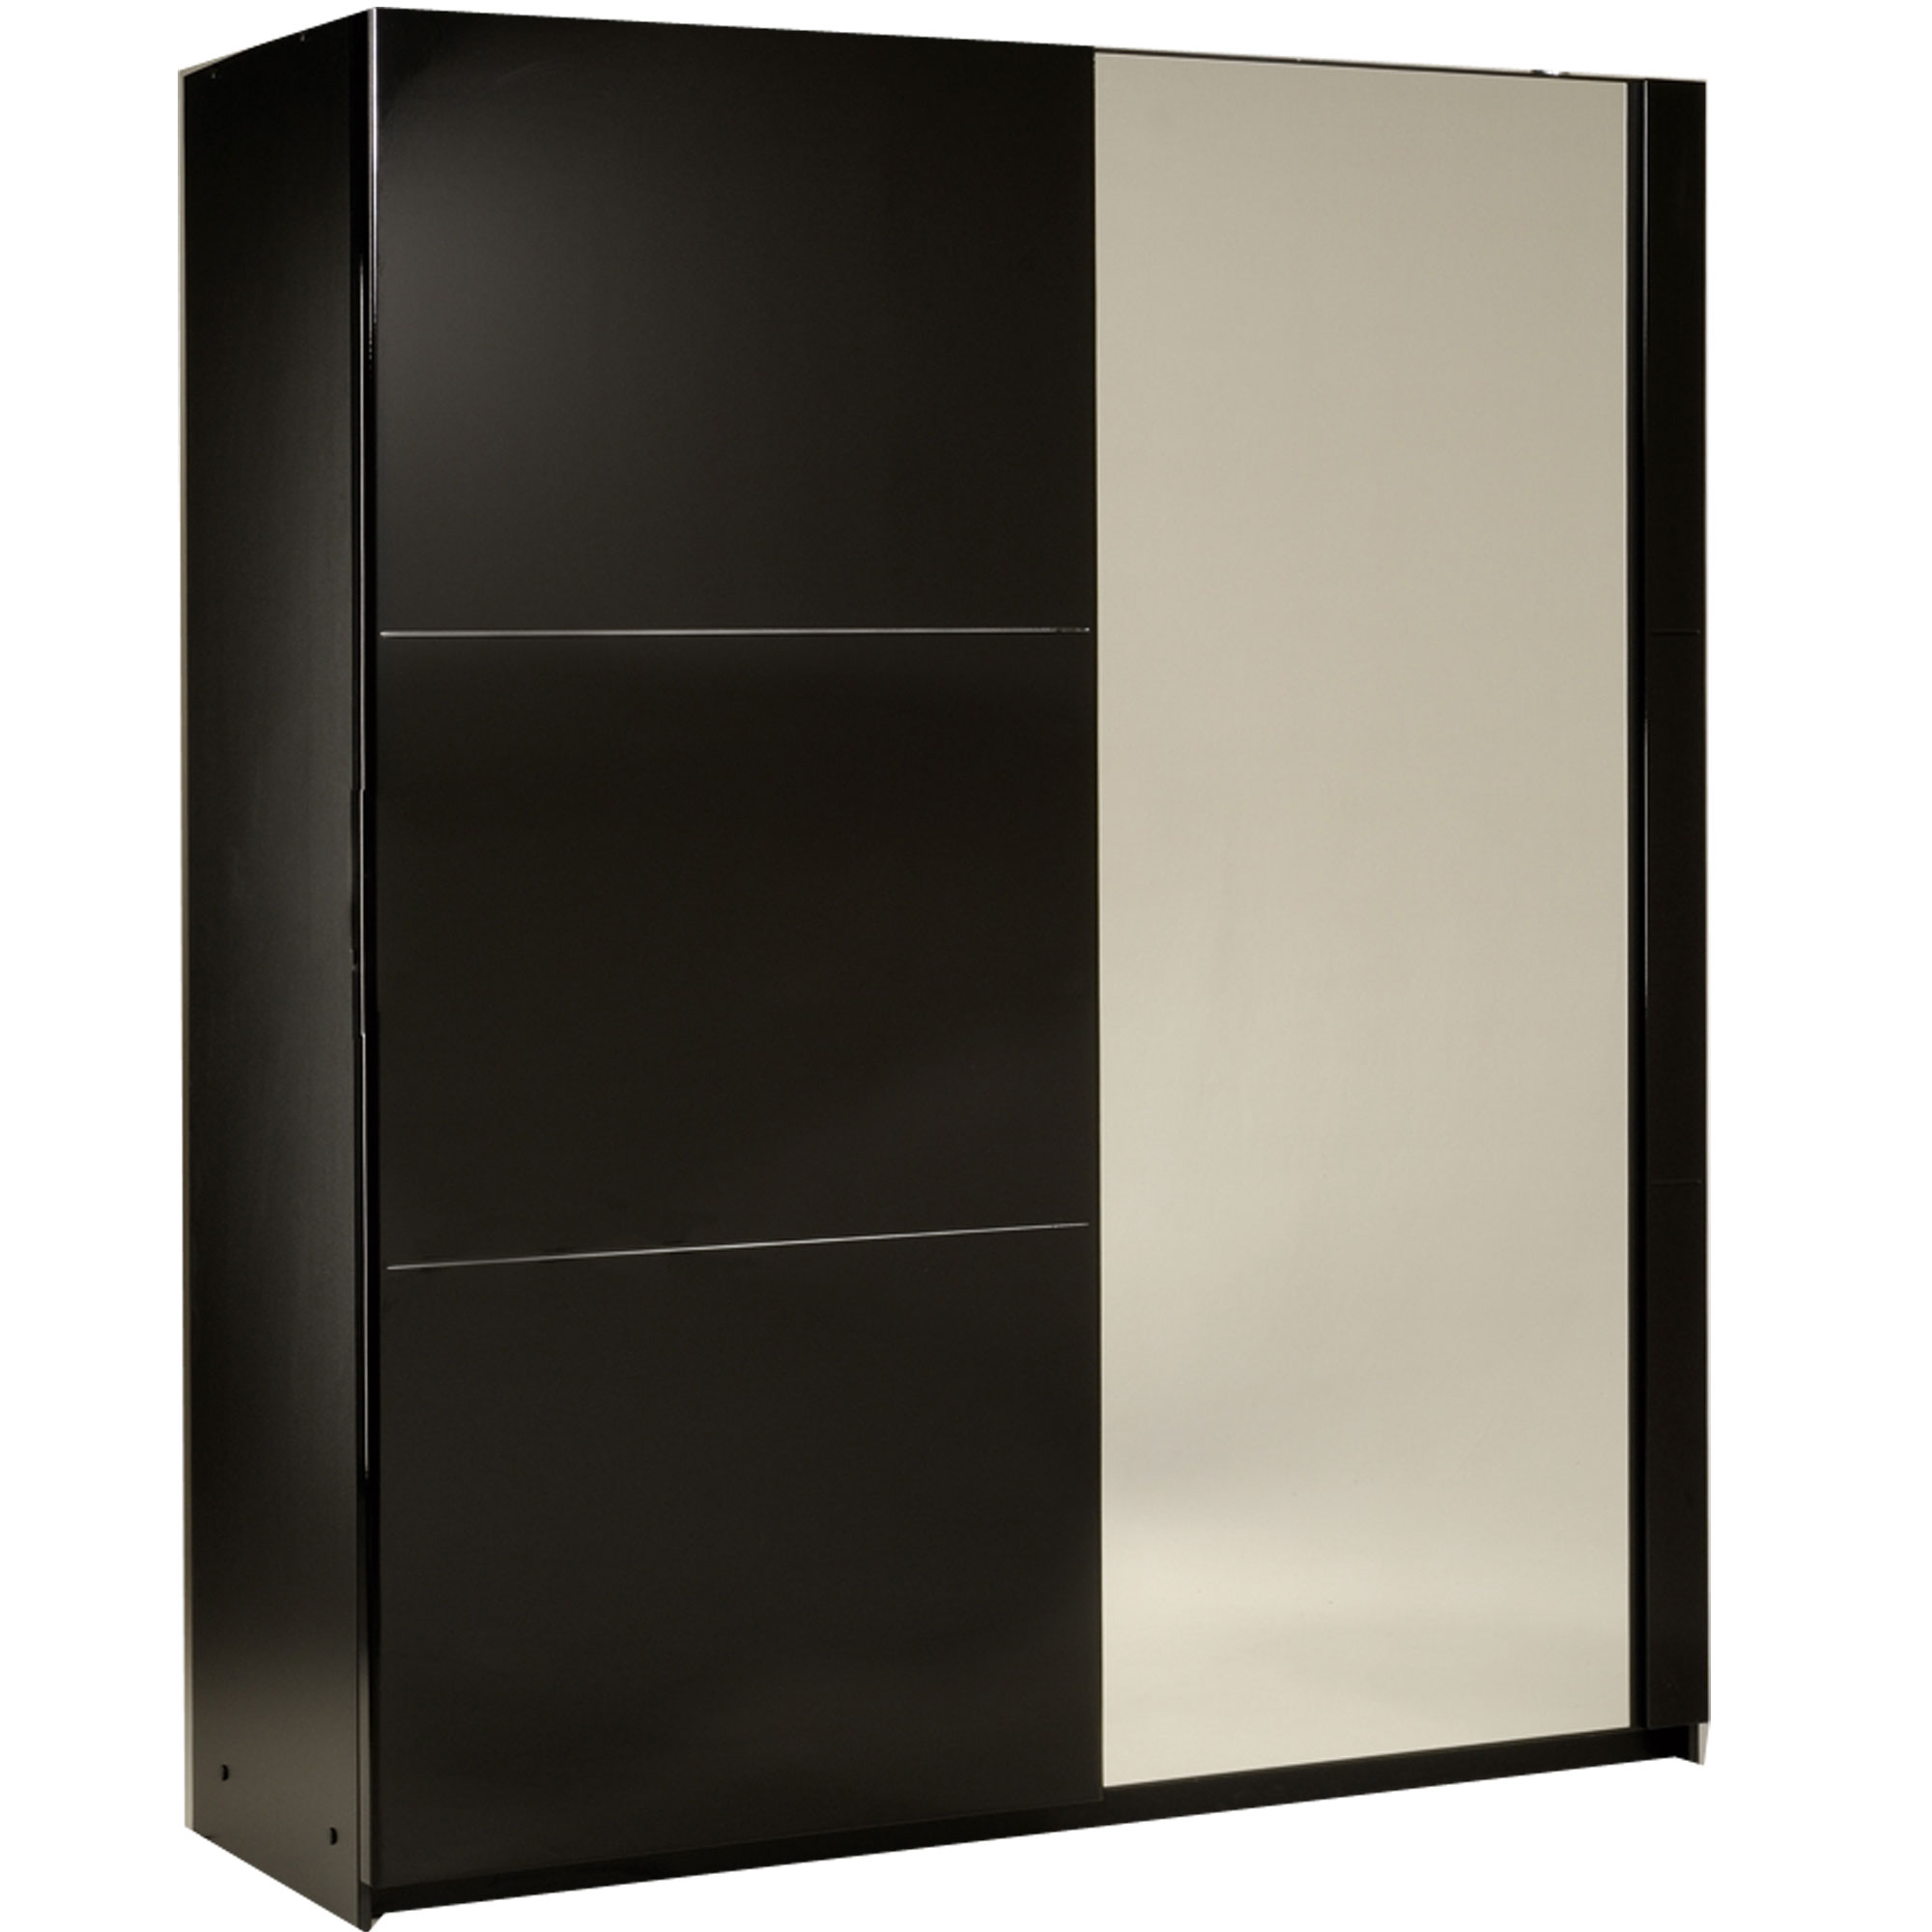 armoire porte coulissante pas cher ikea maison design. Black Bedroom Furniture Sets. Home Design Ideas